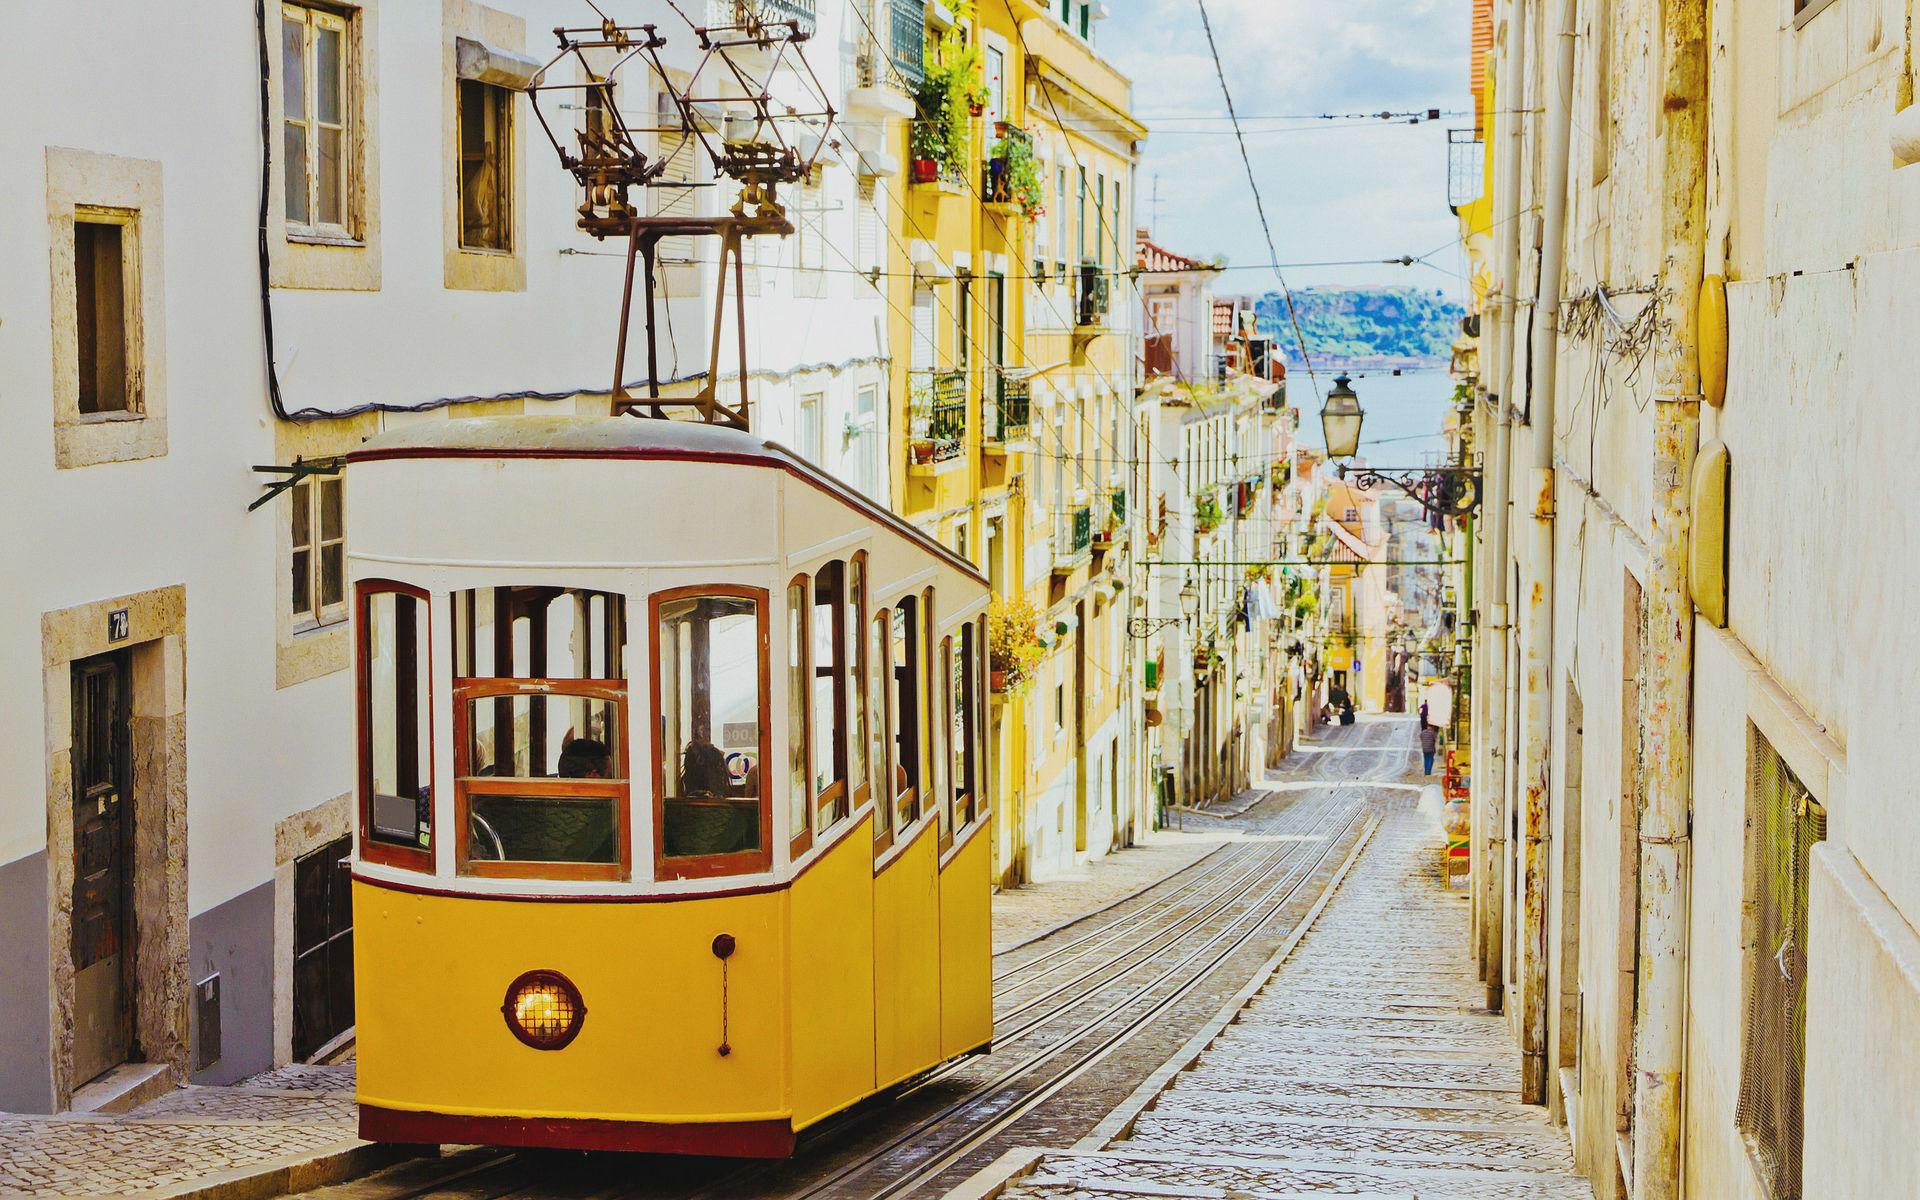 The traditional tram in Lisbon